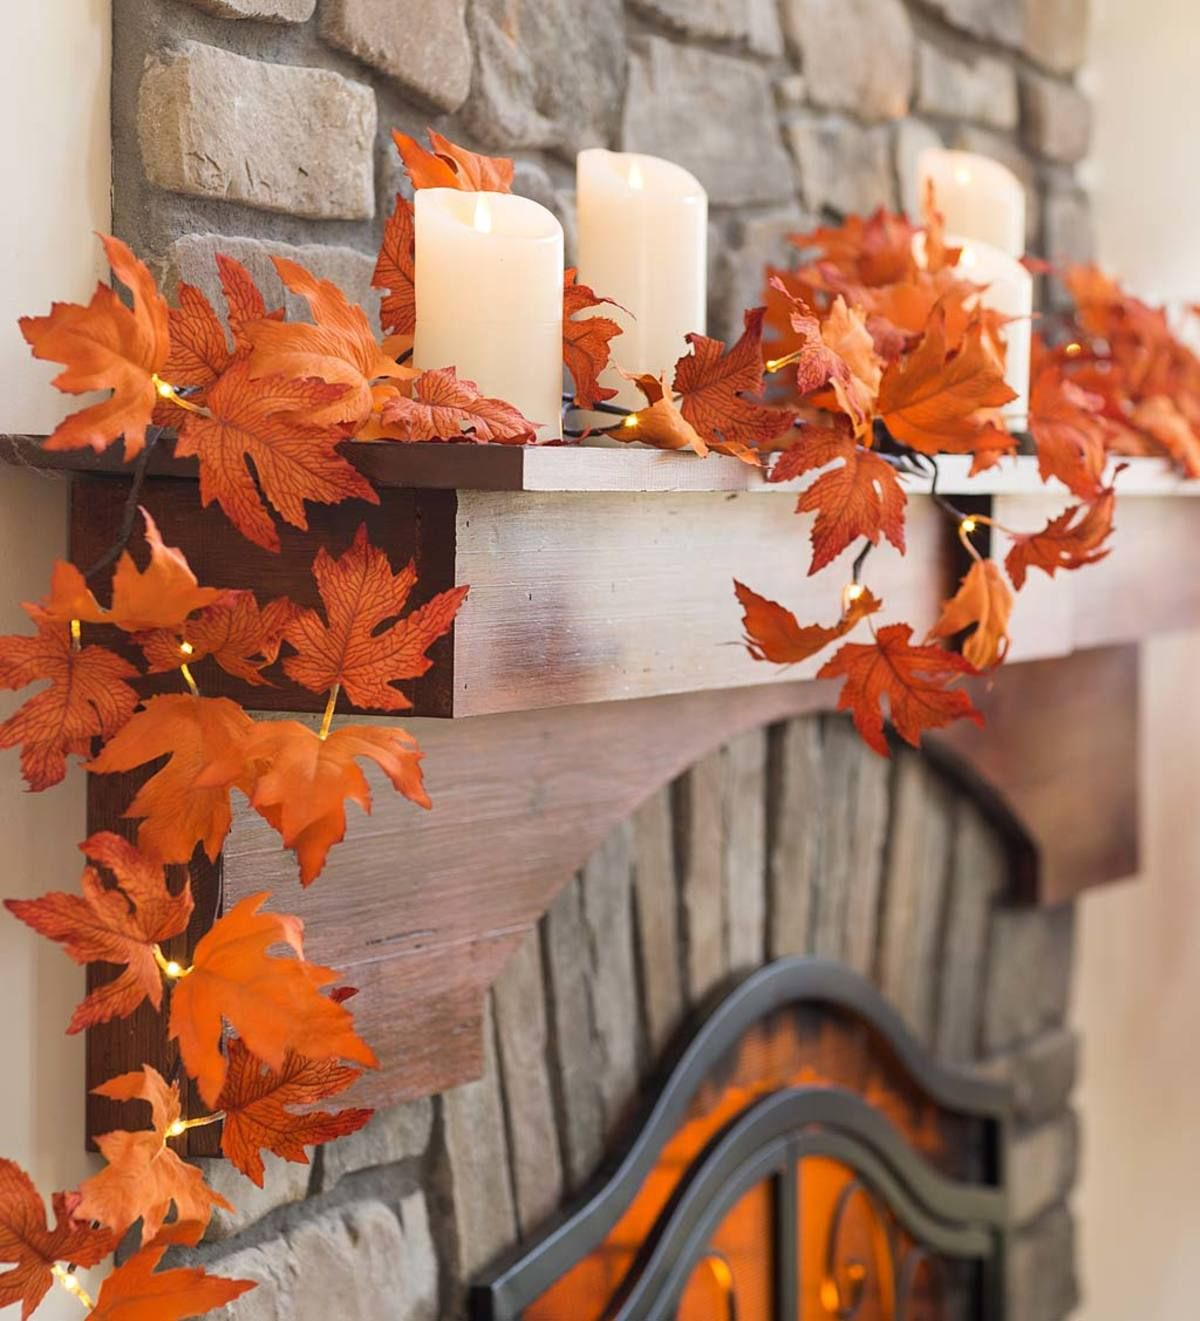 Our Indoor Outdoor Lighted Maple Leaf Garland Adds Brilliant Seasonal Style Anywhere With Its Realistic Foliage And Led Ligh Leaf Garland Fall Accents Garland